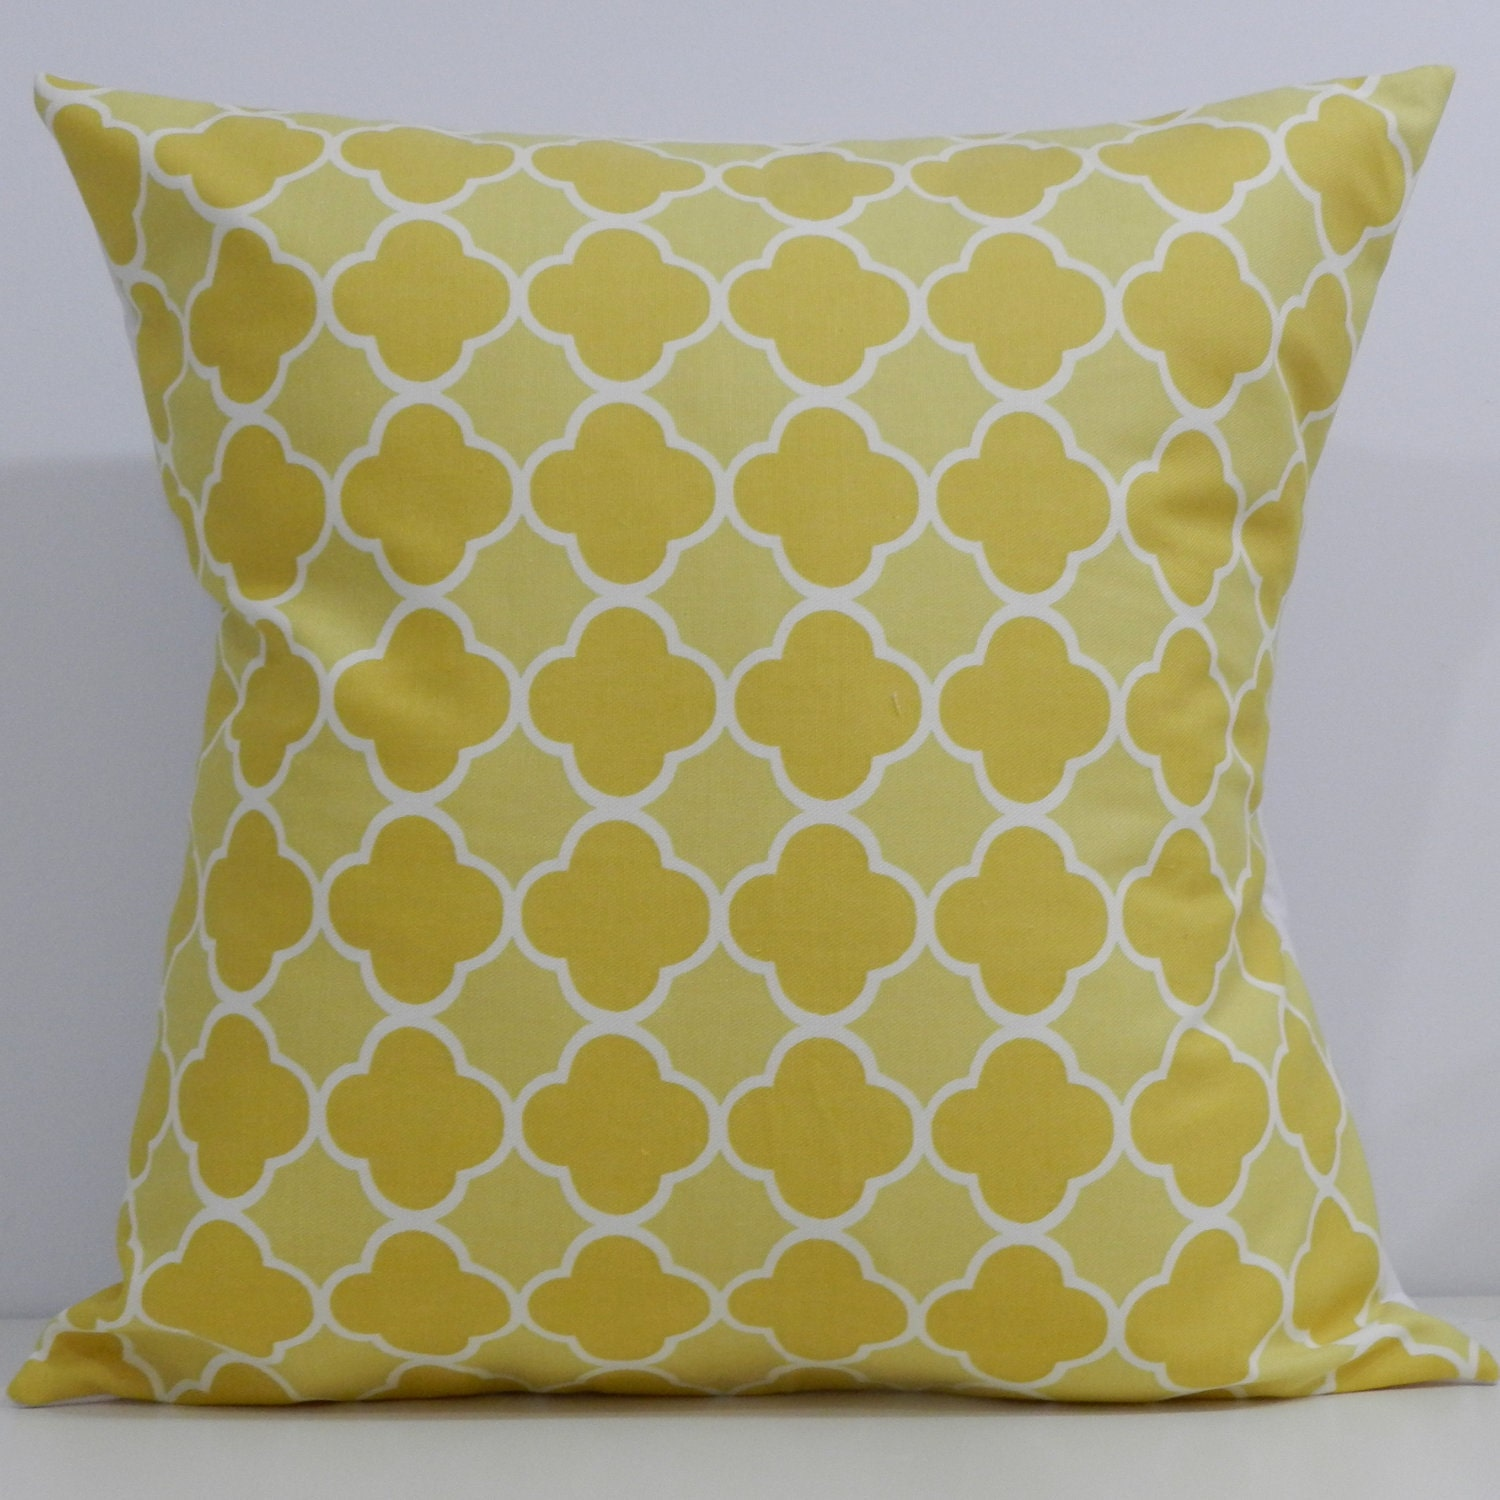 New 18x18 inch Designer Handmade Pillow Case in yellow